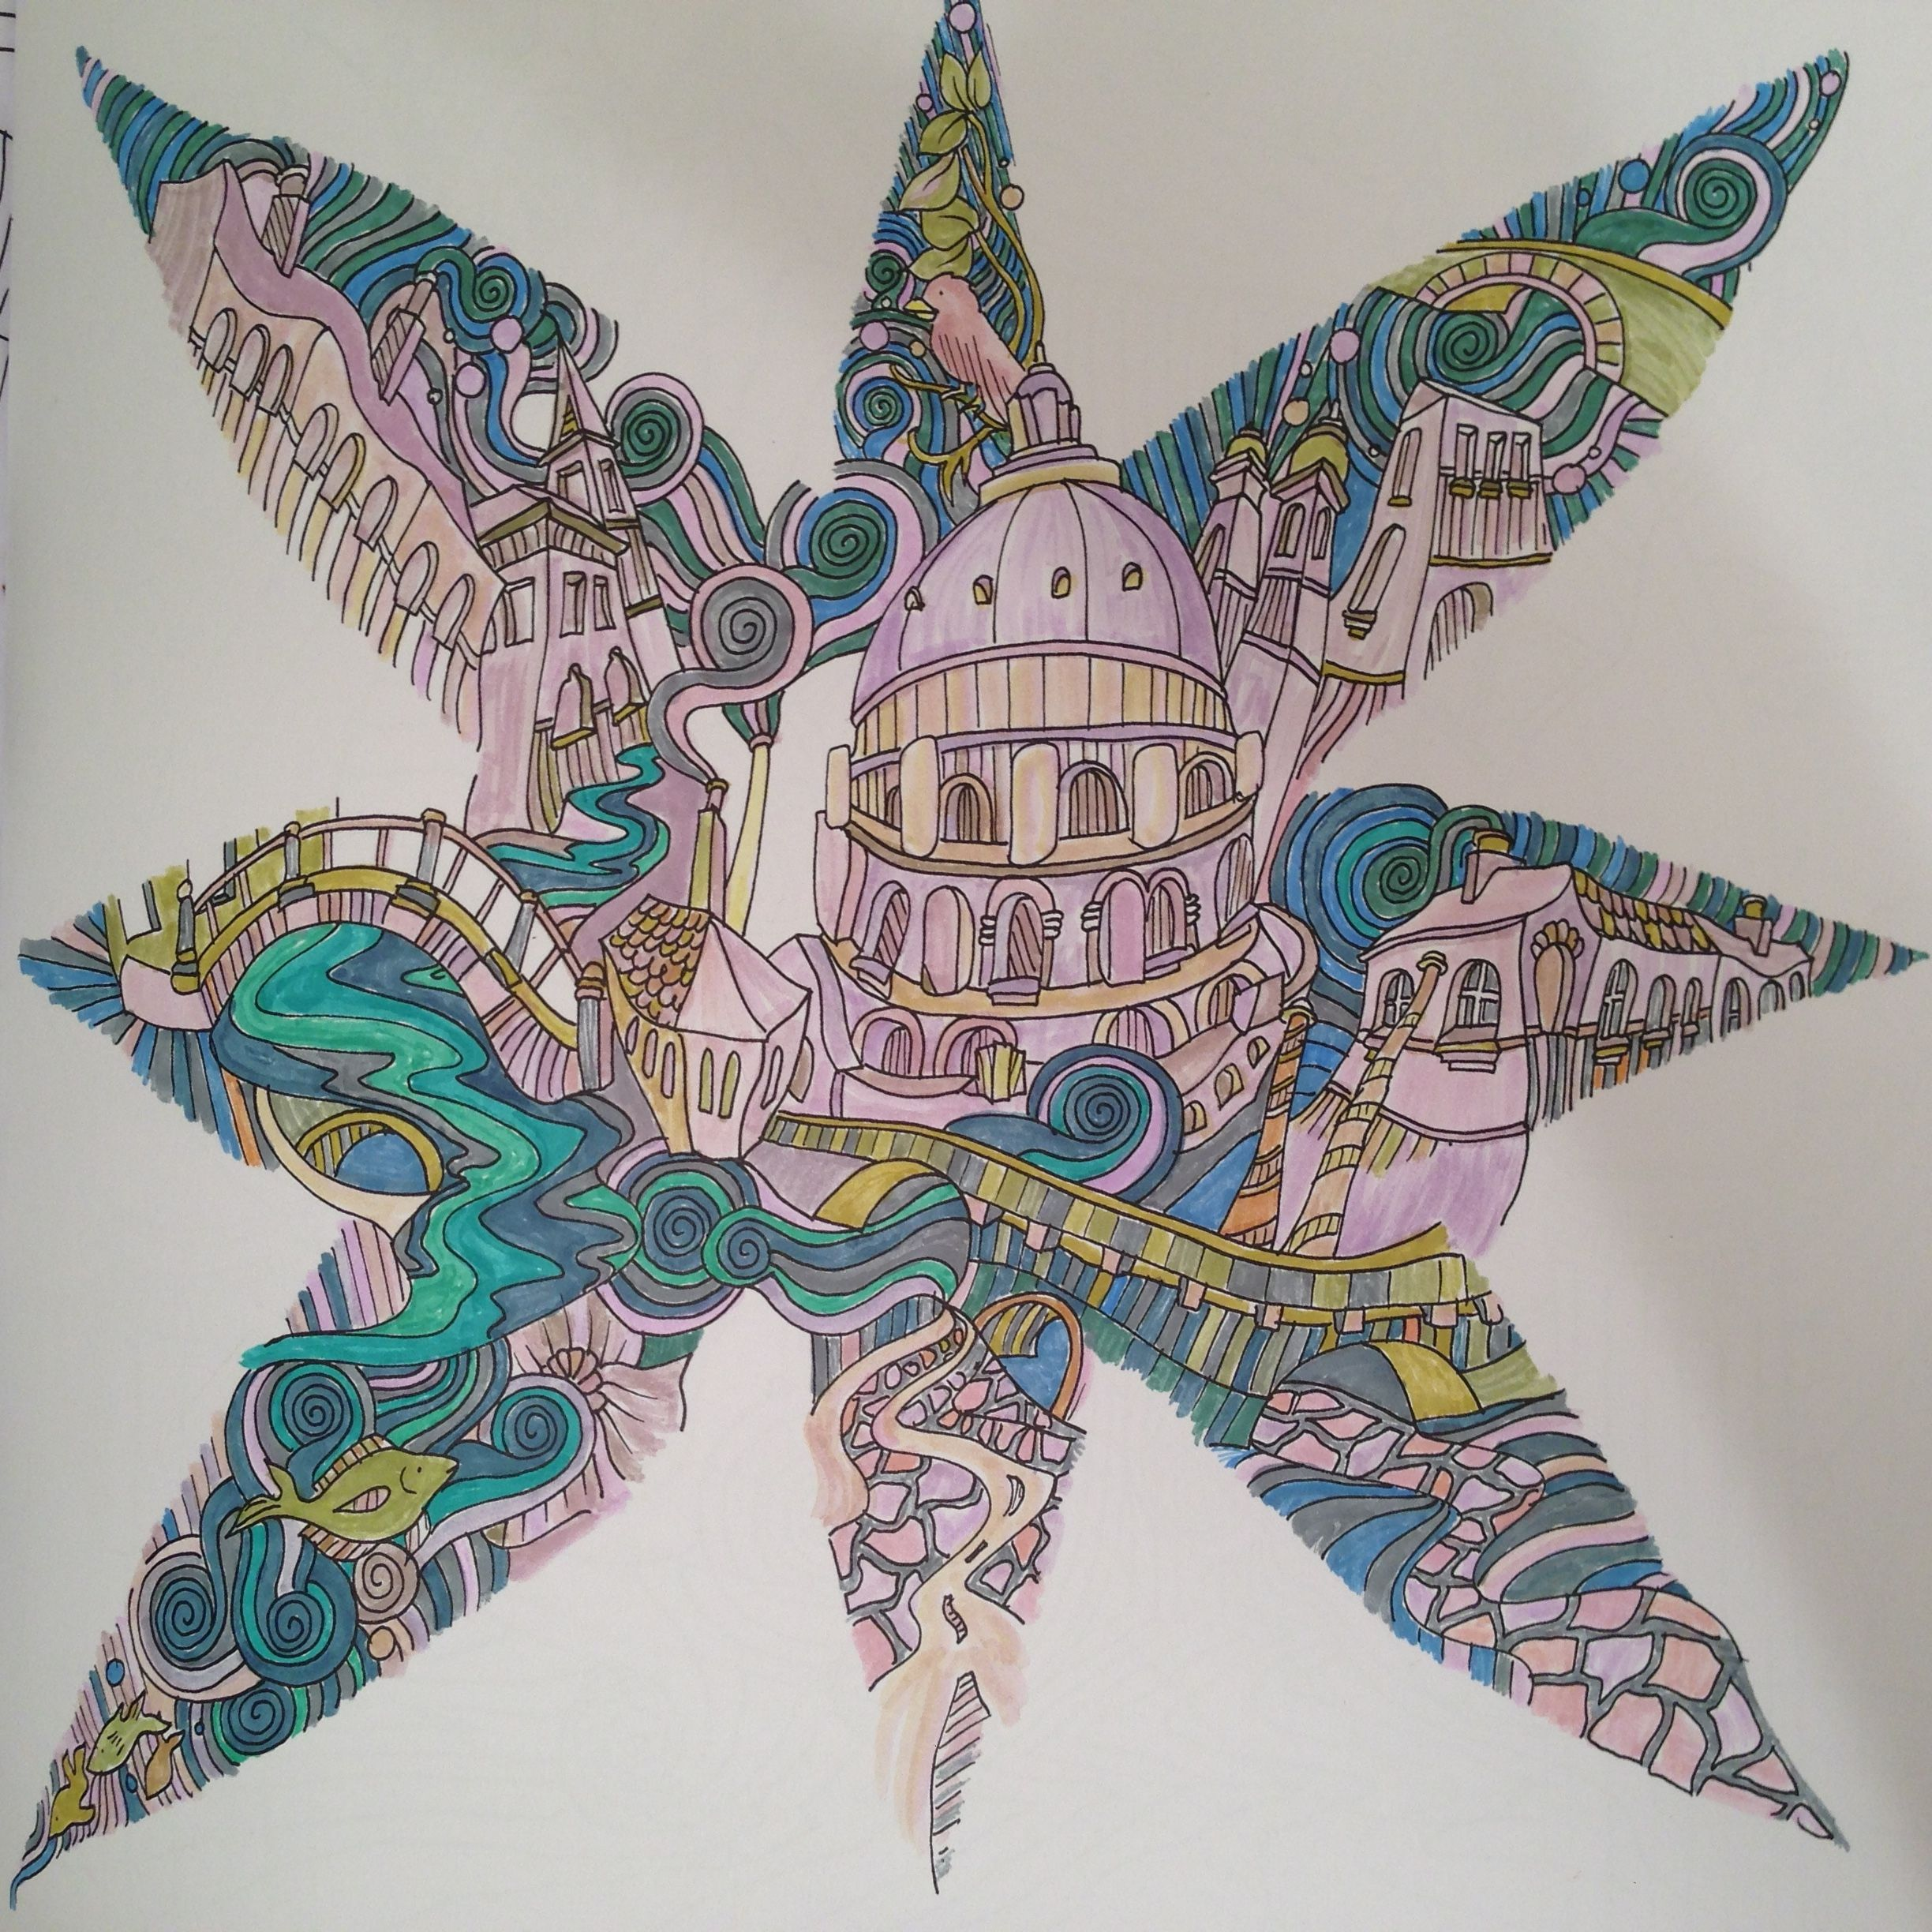 Th the magical city colouring in book - Venice From The Magical City Colouring Book By Lizzie Mary Cullen Coloured By Janet